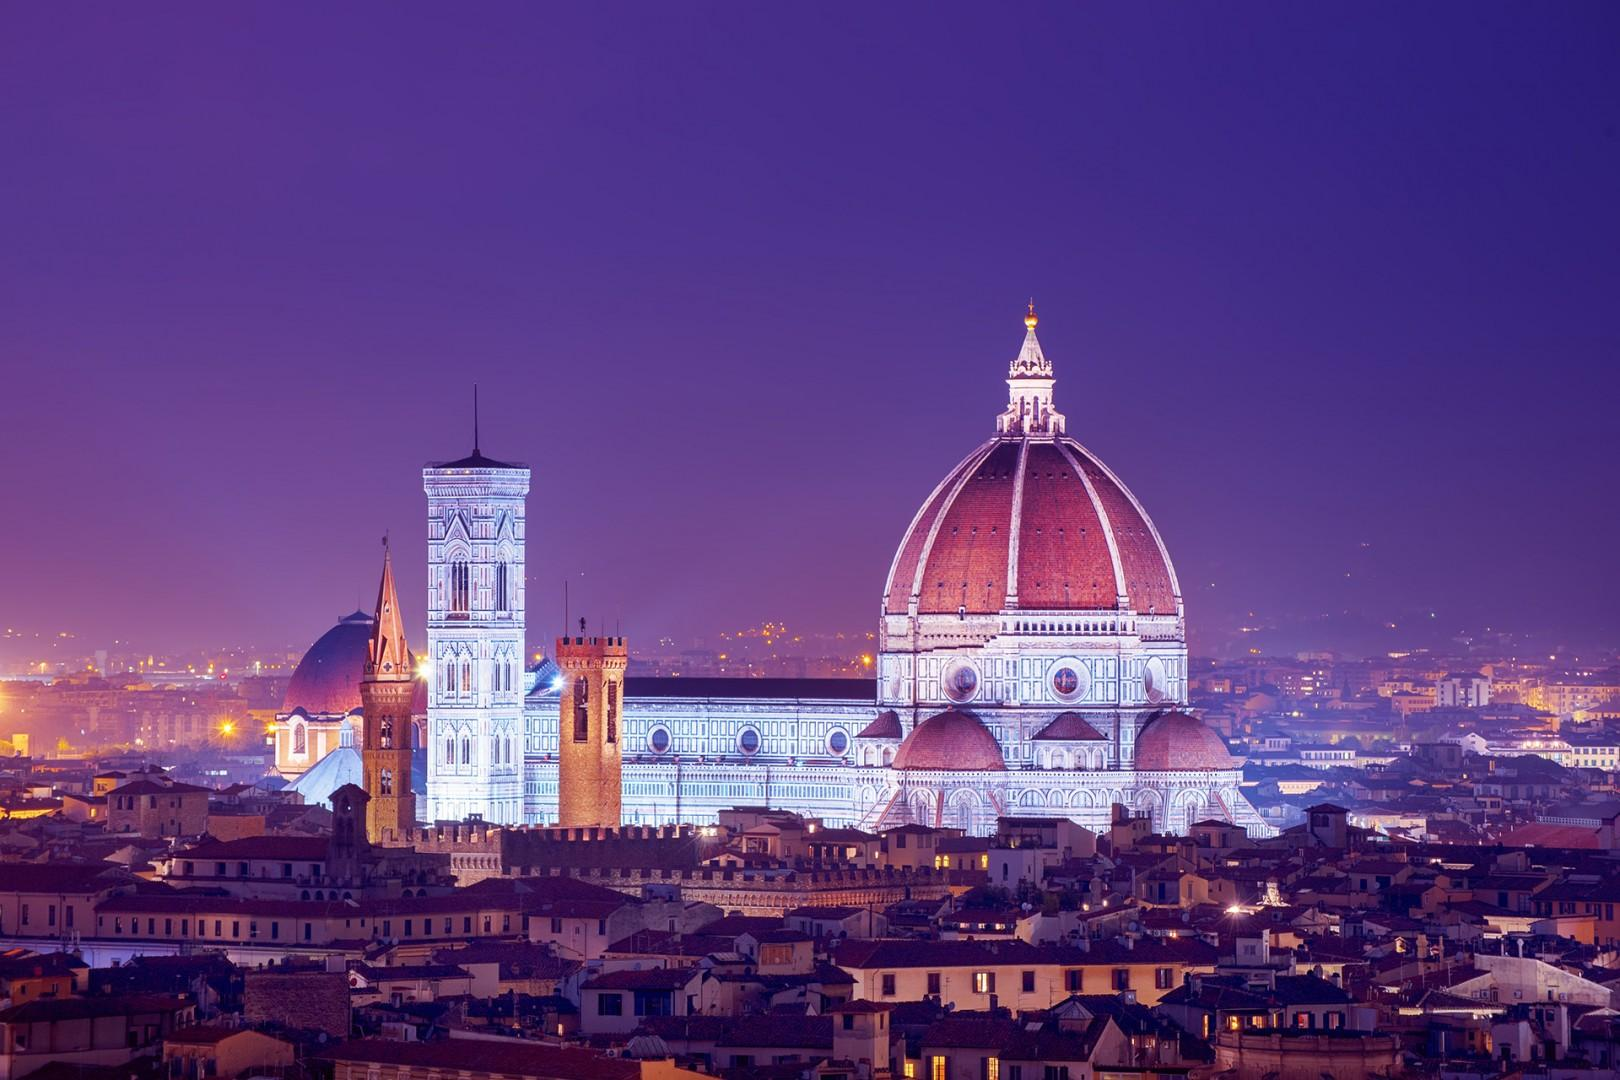 The Duomo, the cathedral Santa Maria del Fiore, glows and welcomes you to the City of Flowers.